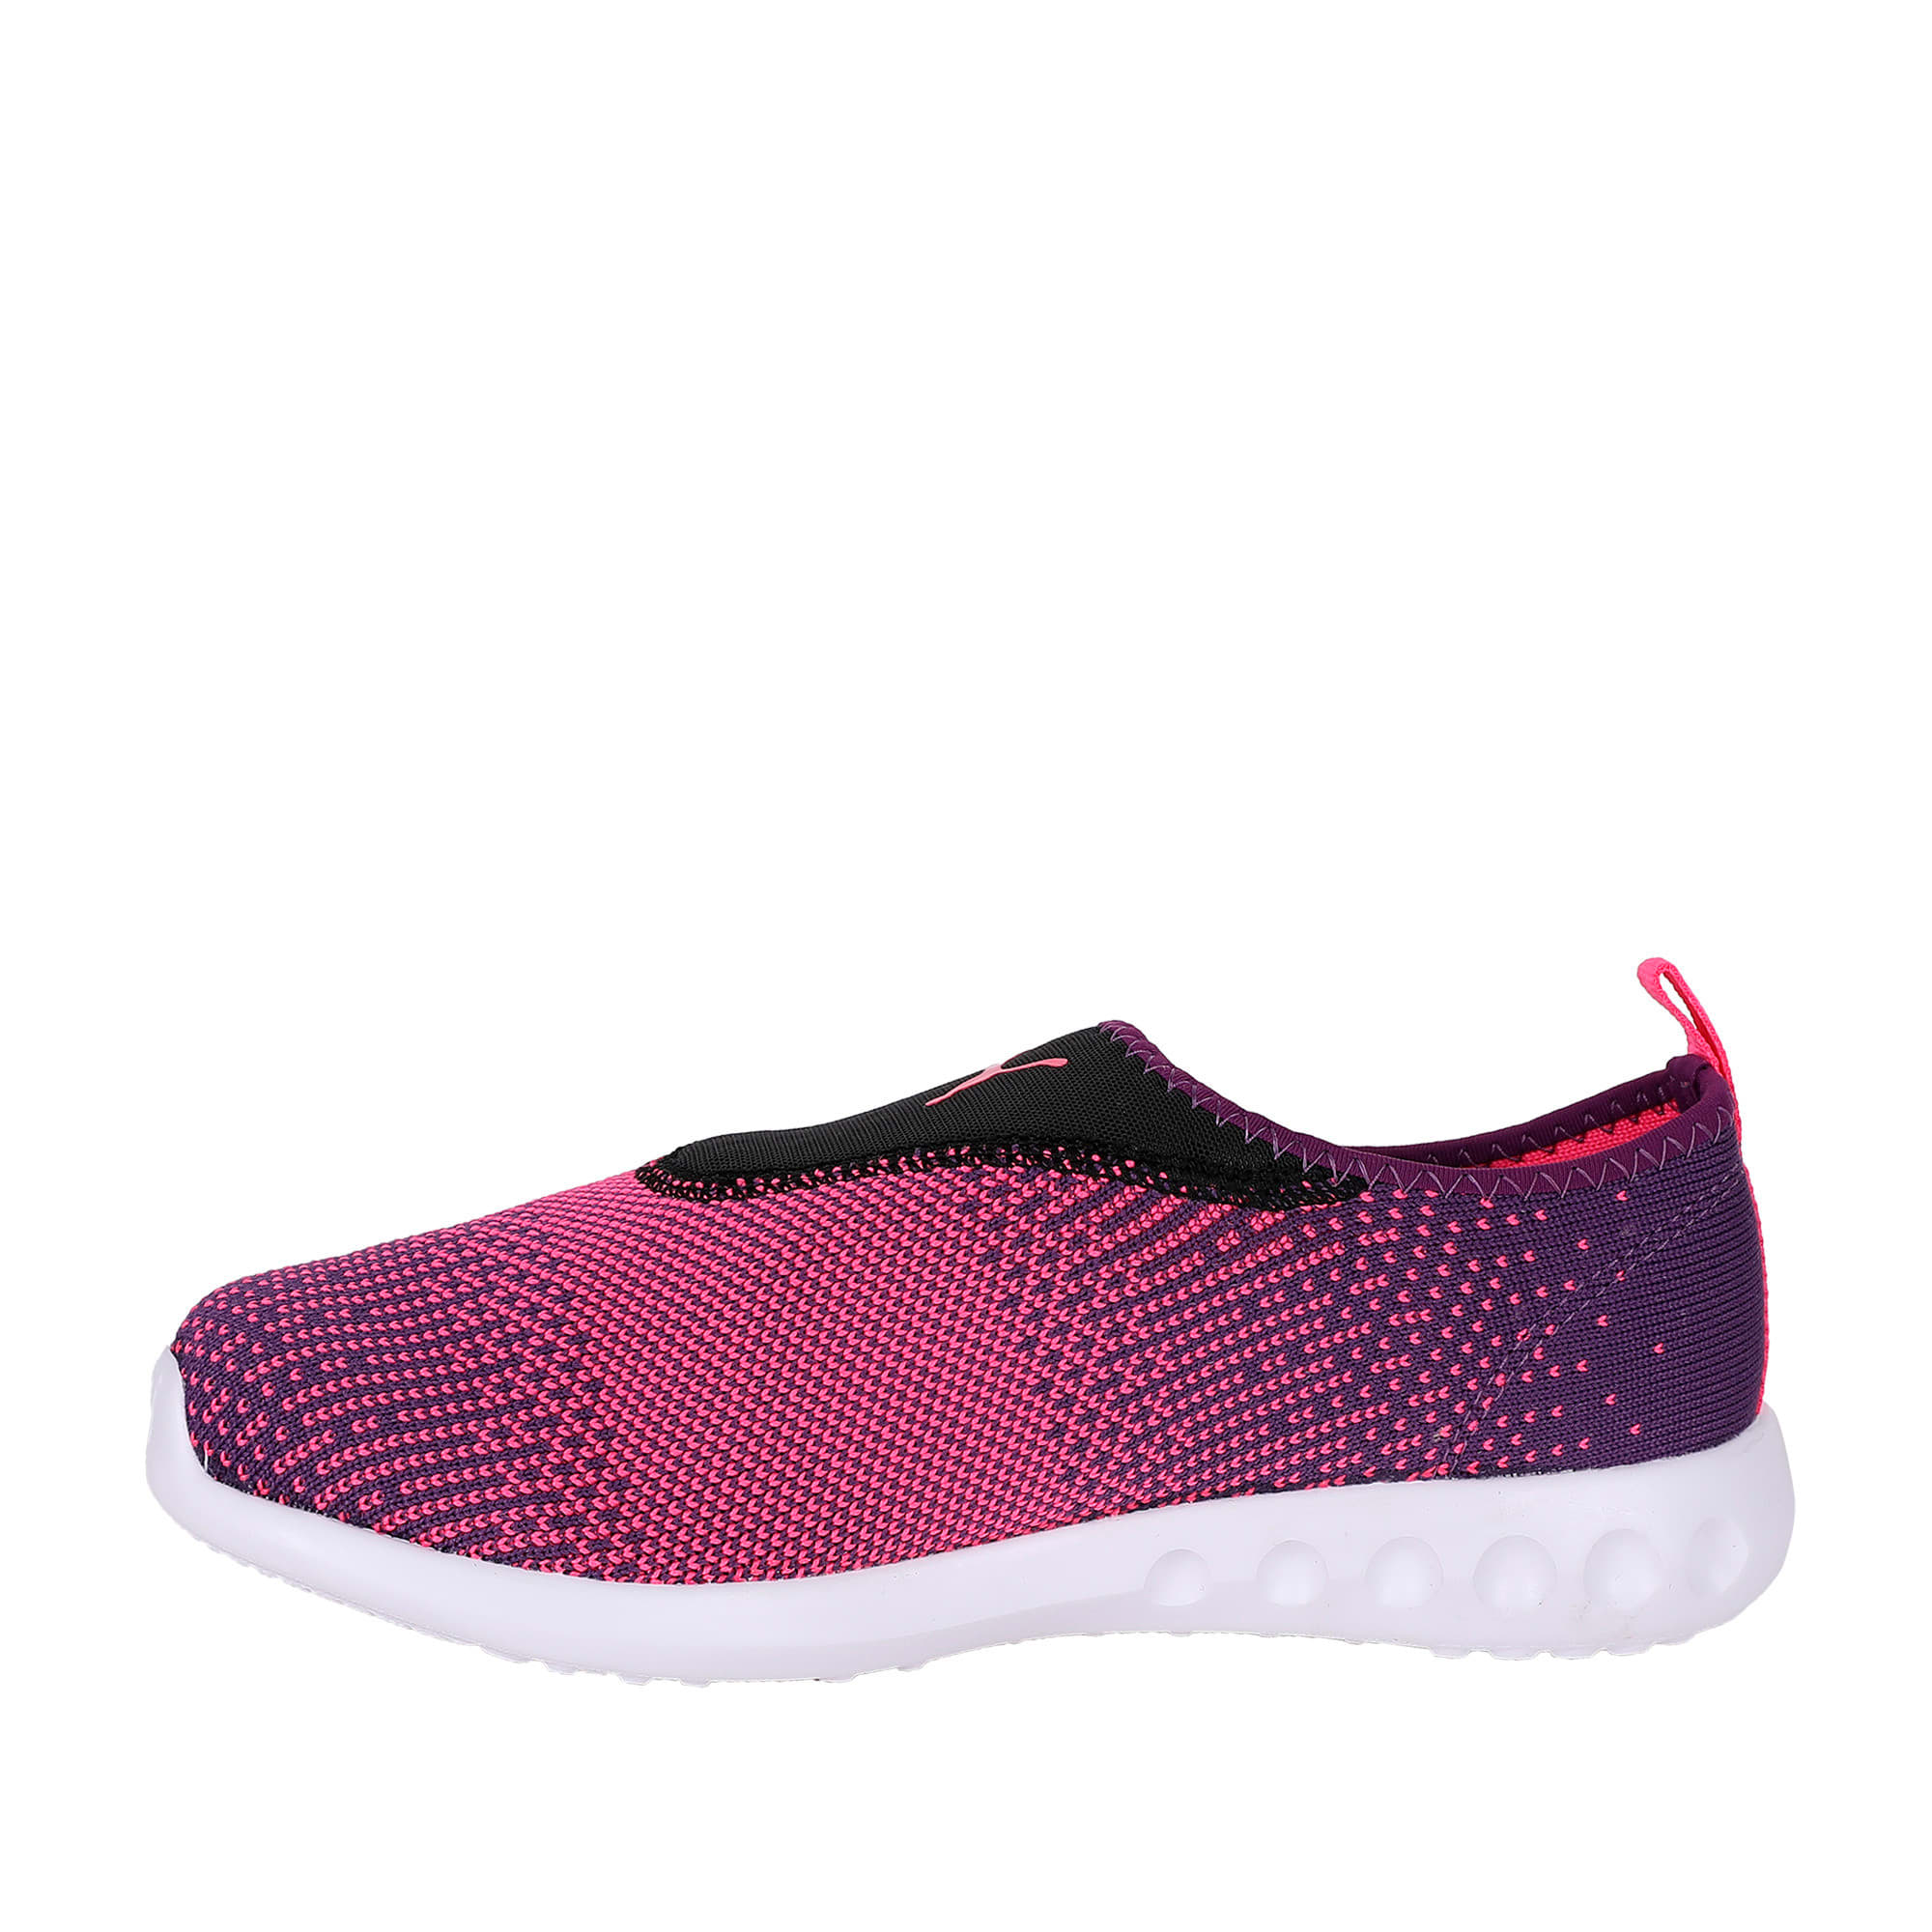 Thumbnail 5 of Carson 2 Slip-On Wn s IDP, Majesty-KO PINK-Puma White, medium-IND